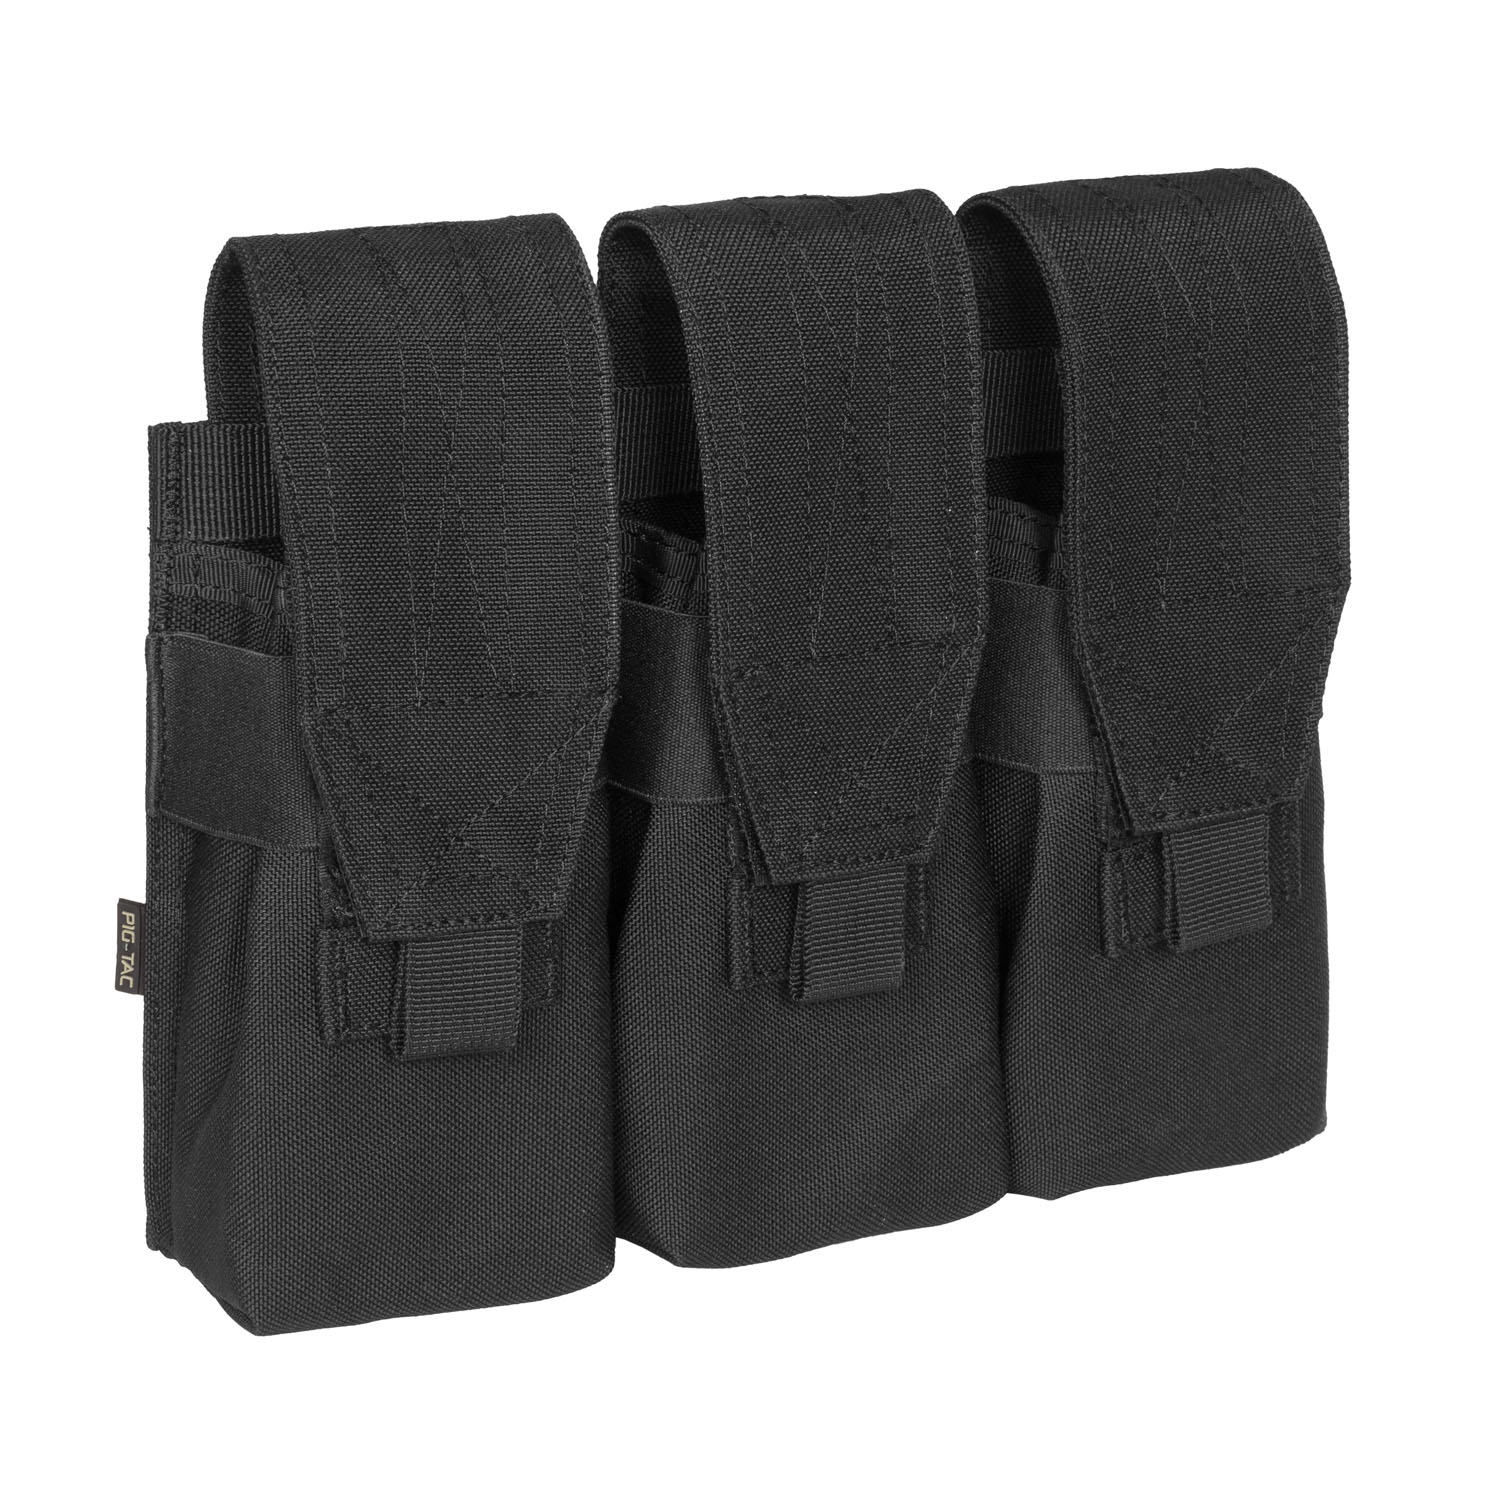 AK/M4/M16 TRIPLE MAG POUCH (HOLDS 6)